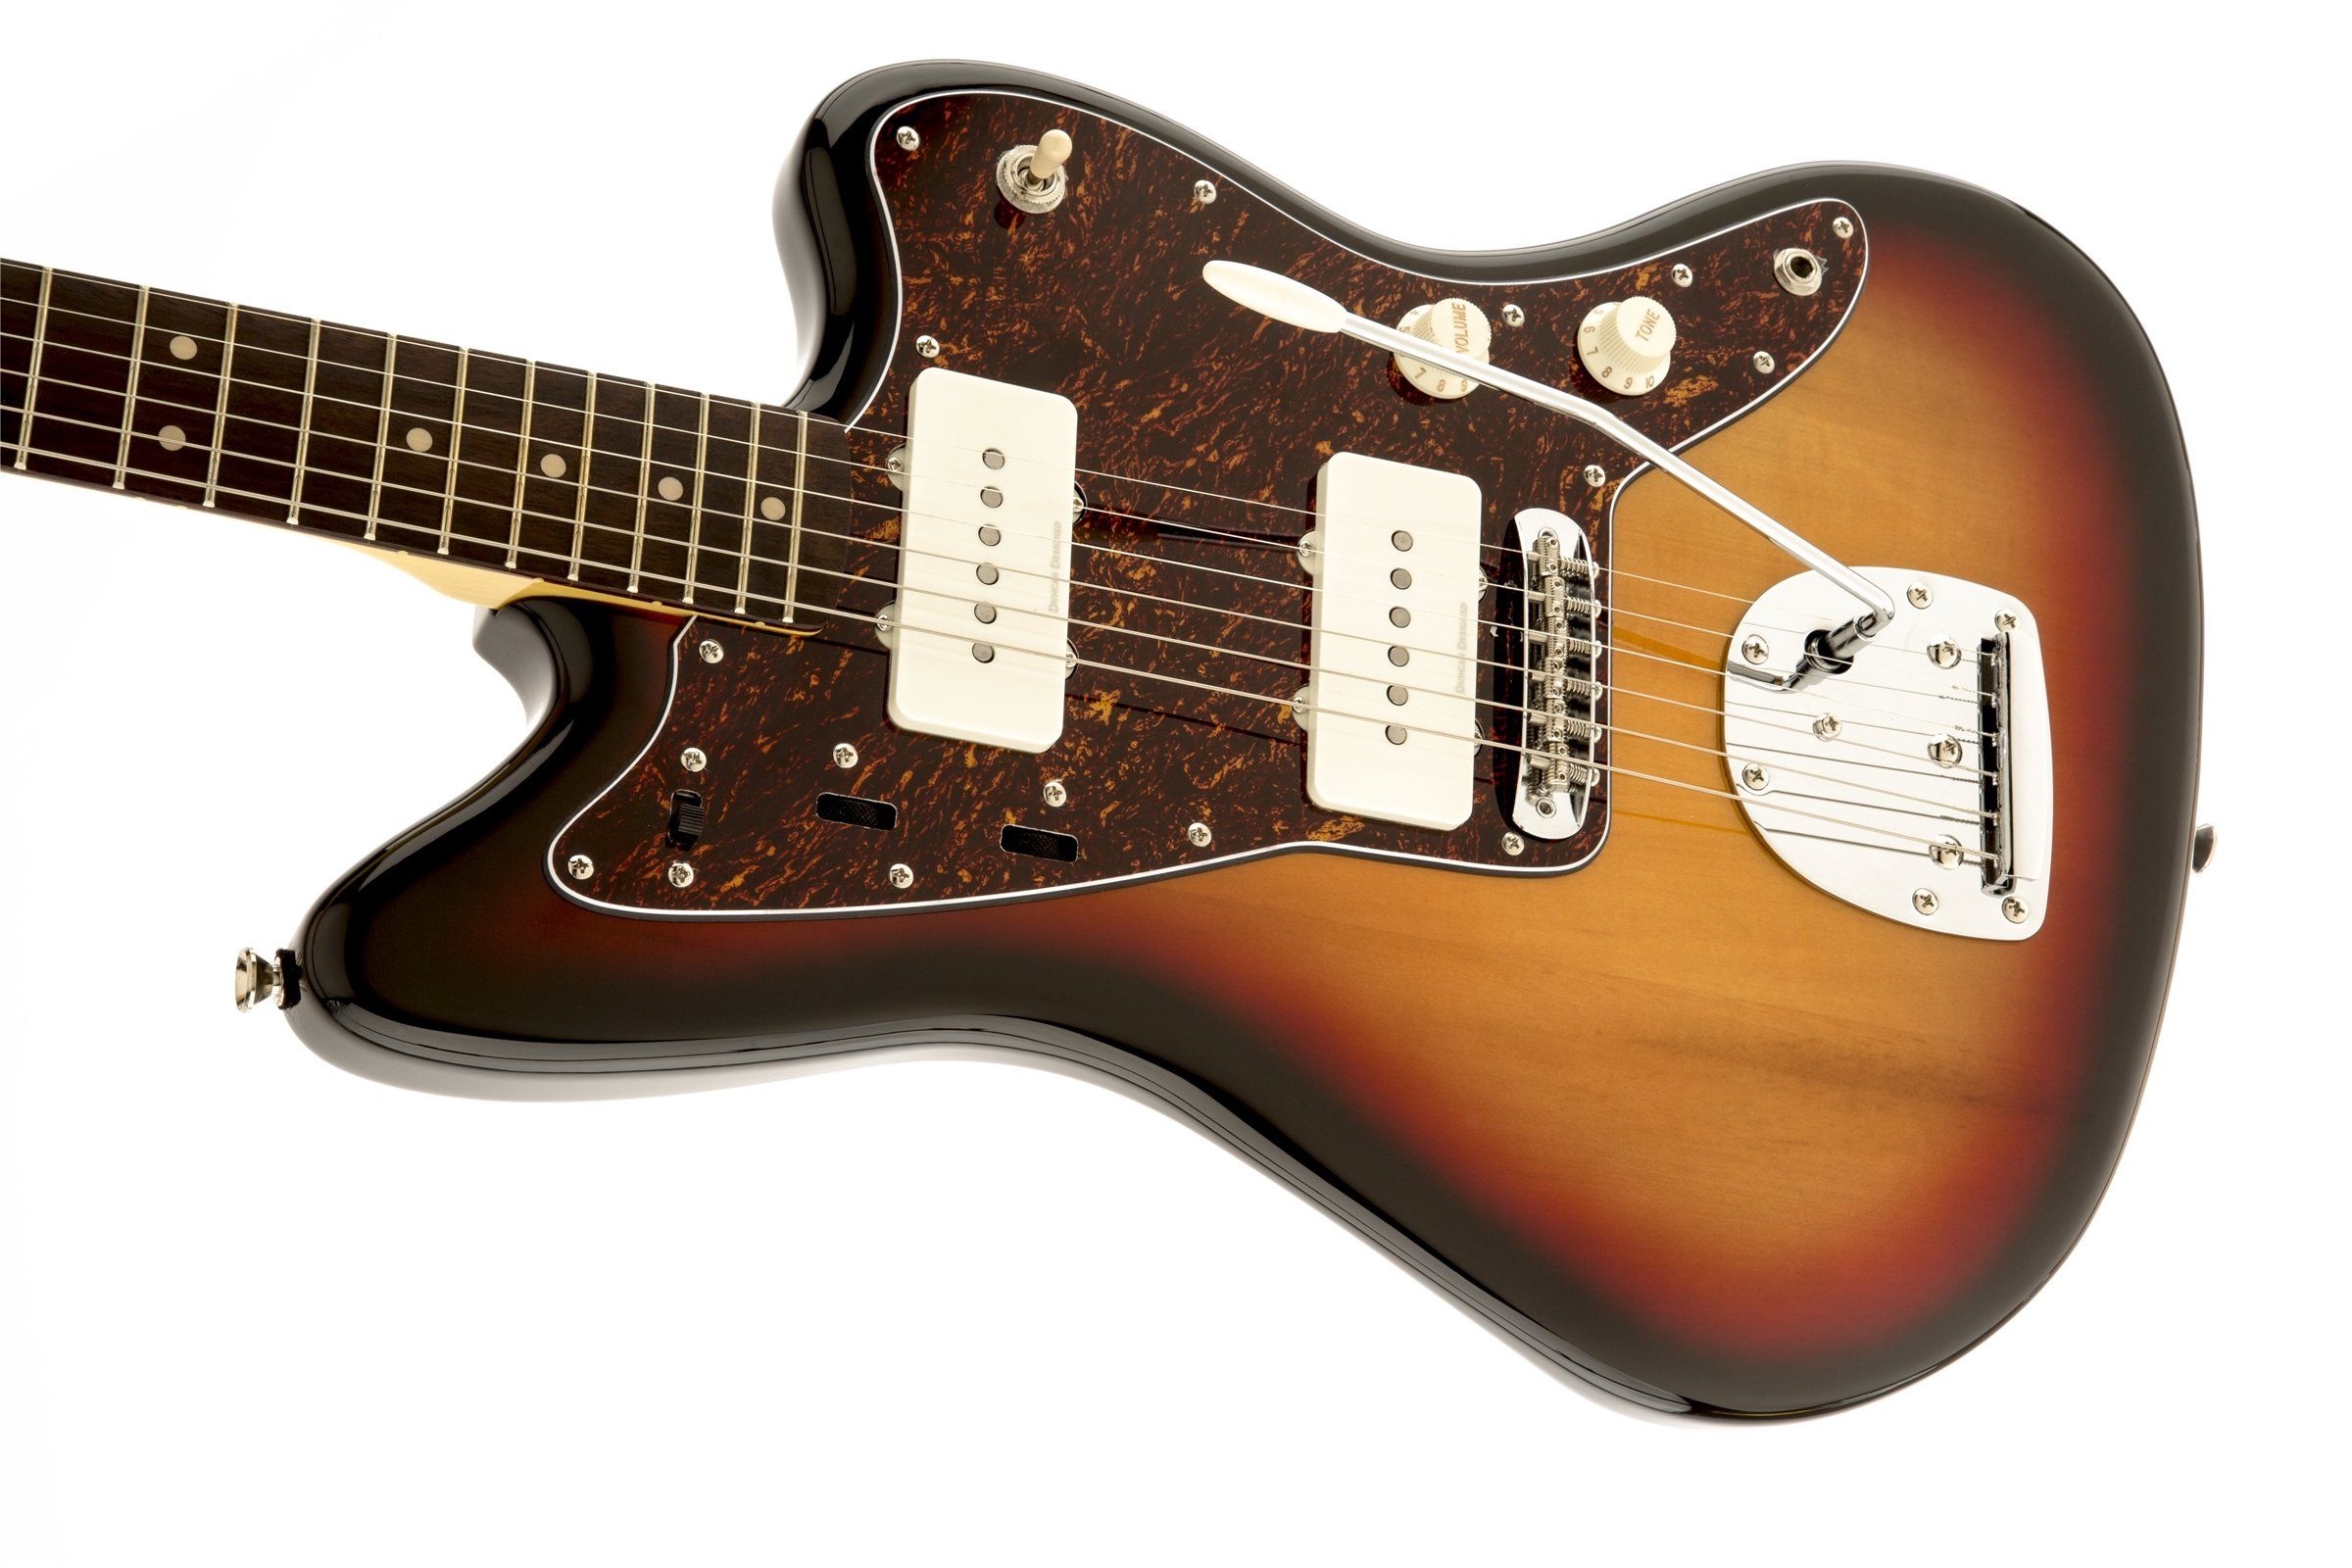 squier by fender vintage modified jazzmaster electric guitar 3 color sunburst guitar affinity. Black Bedroom Furniture Sets. Home Design Ideas